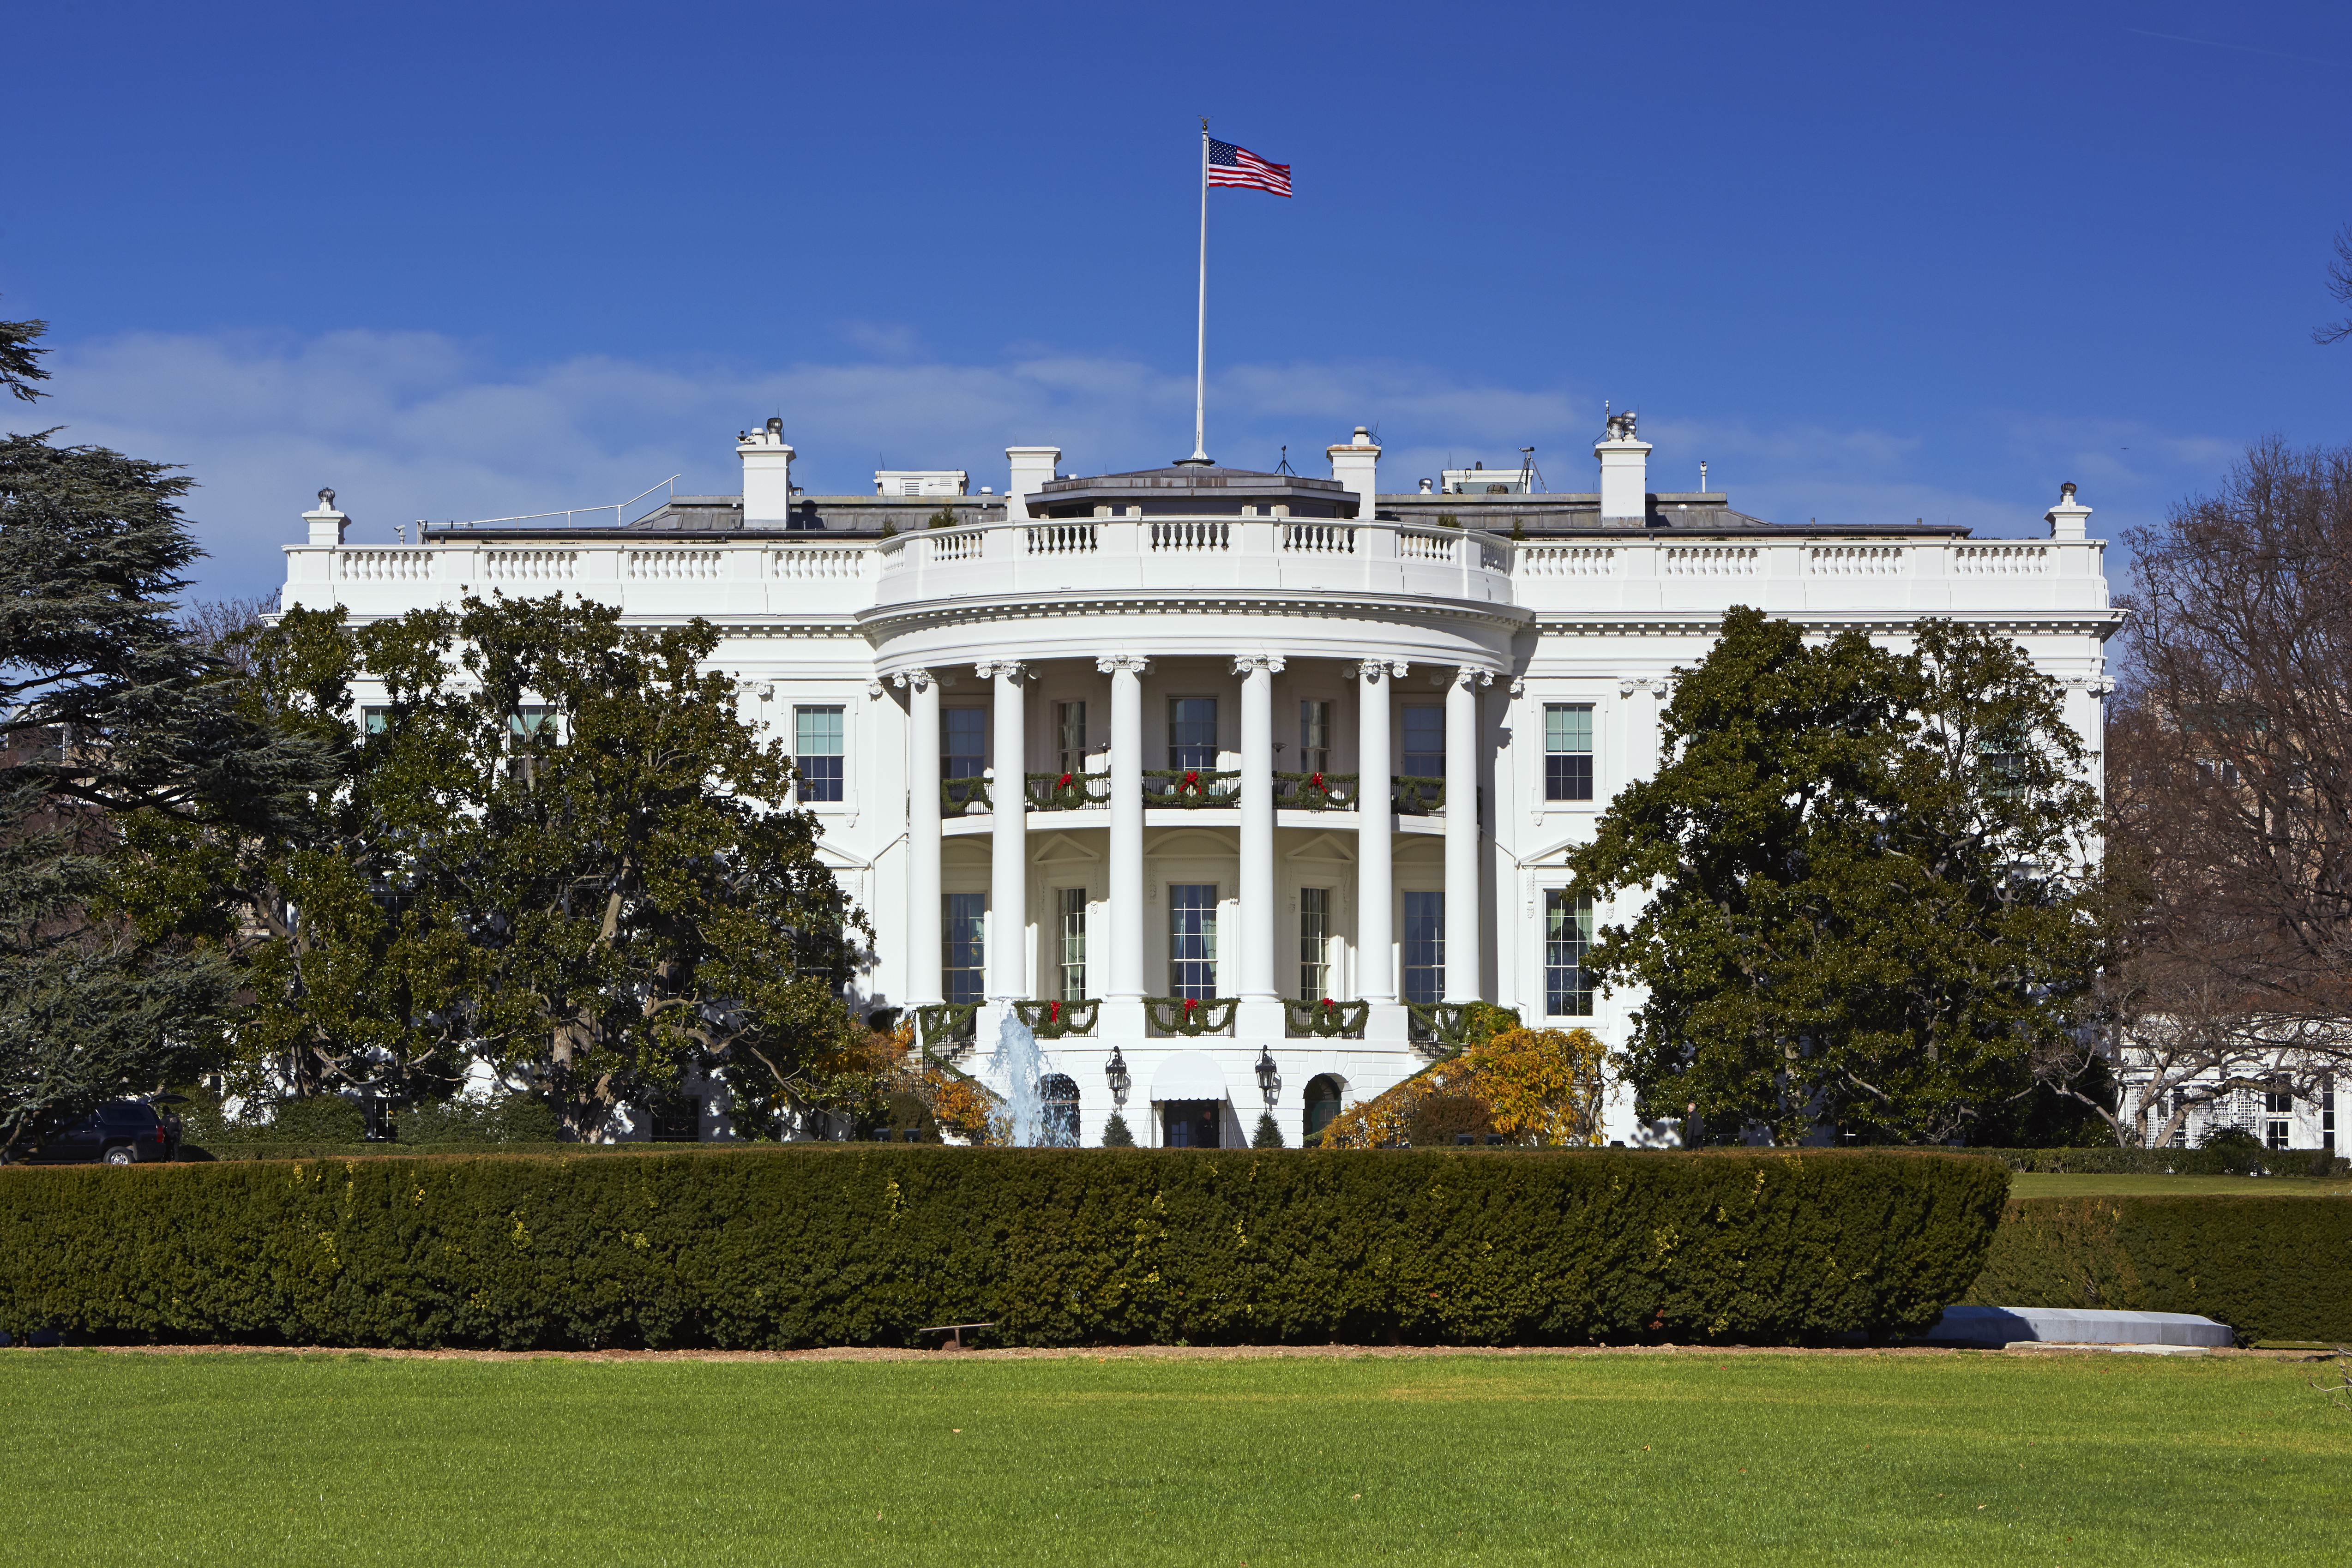 White House at midday